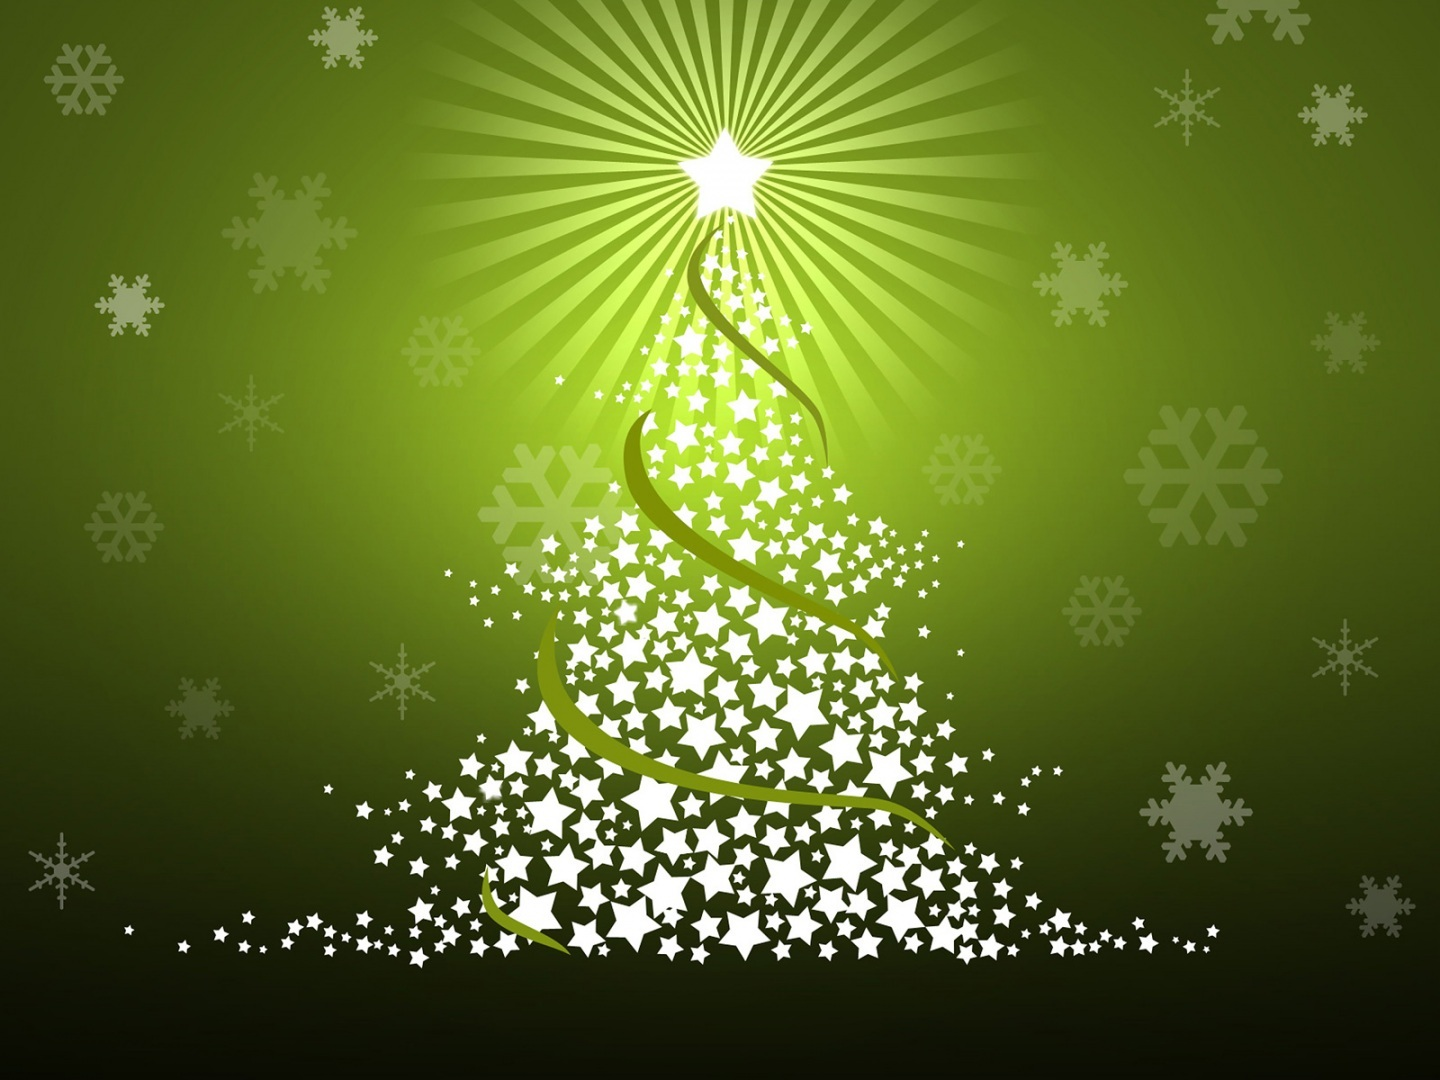 Christmas-Live-Free-Android-Apps-on-Google-Play-%C3%971080-Xmas-For-Android-wallpaper-wp3803783